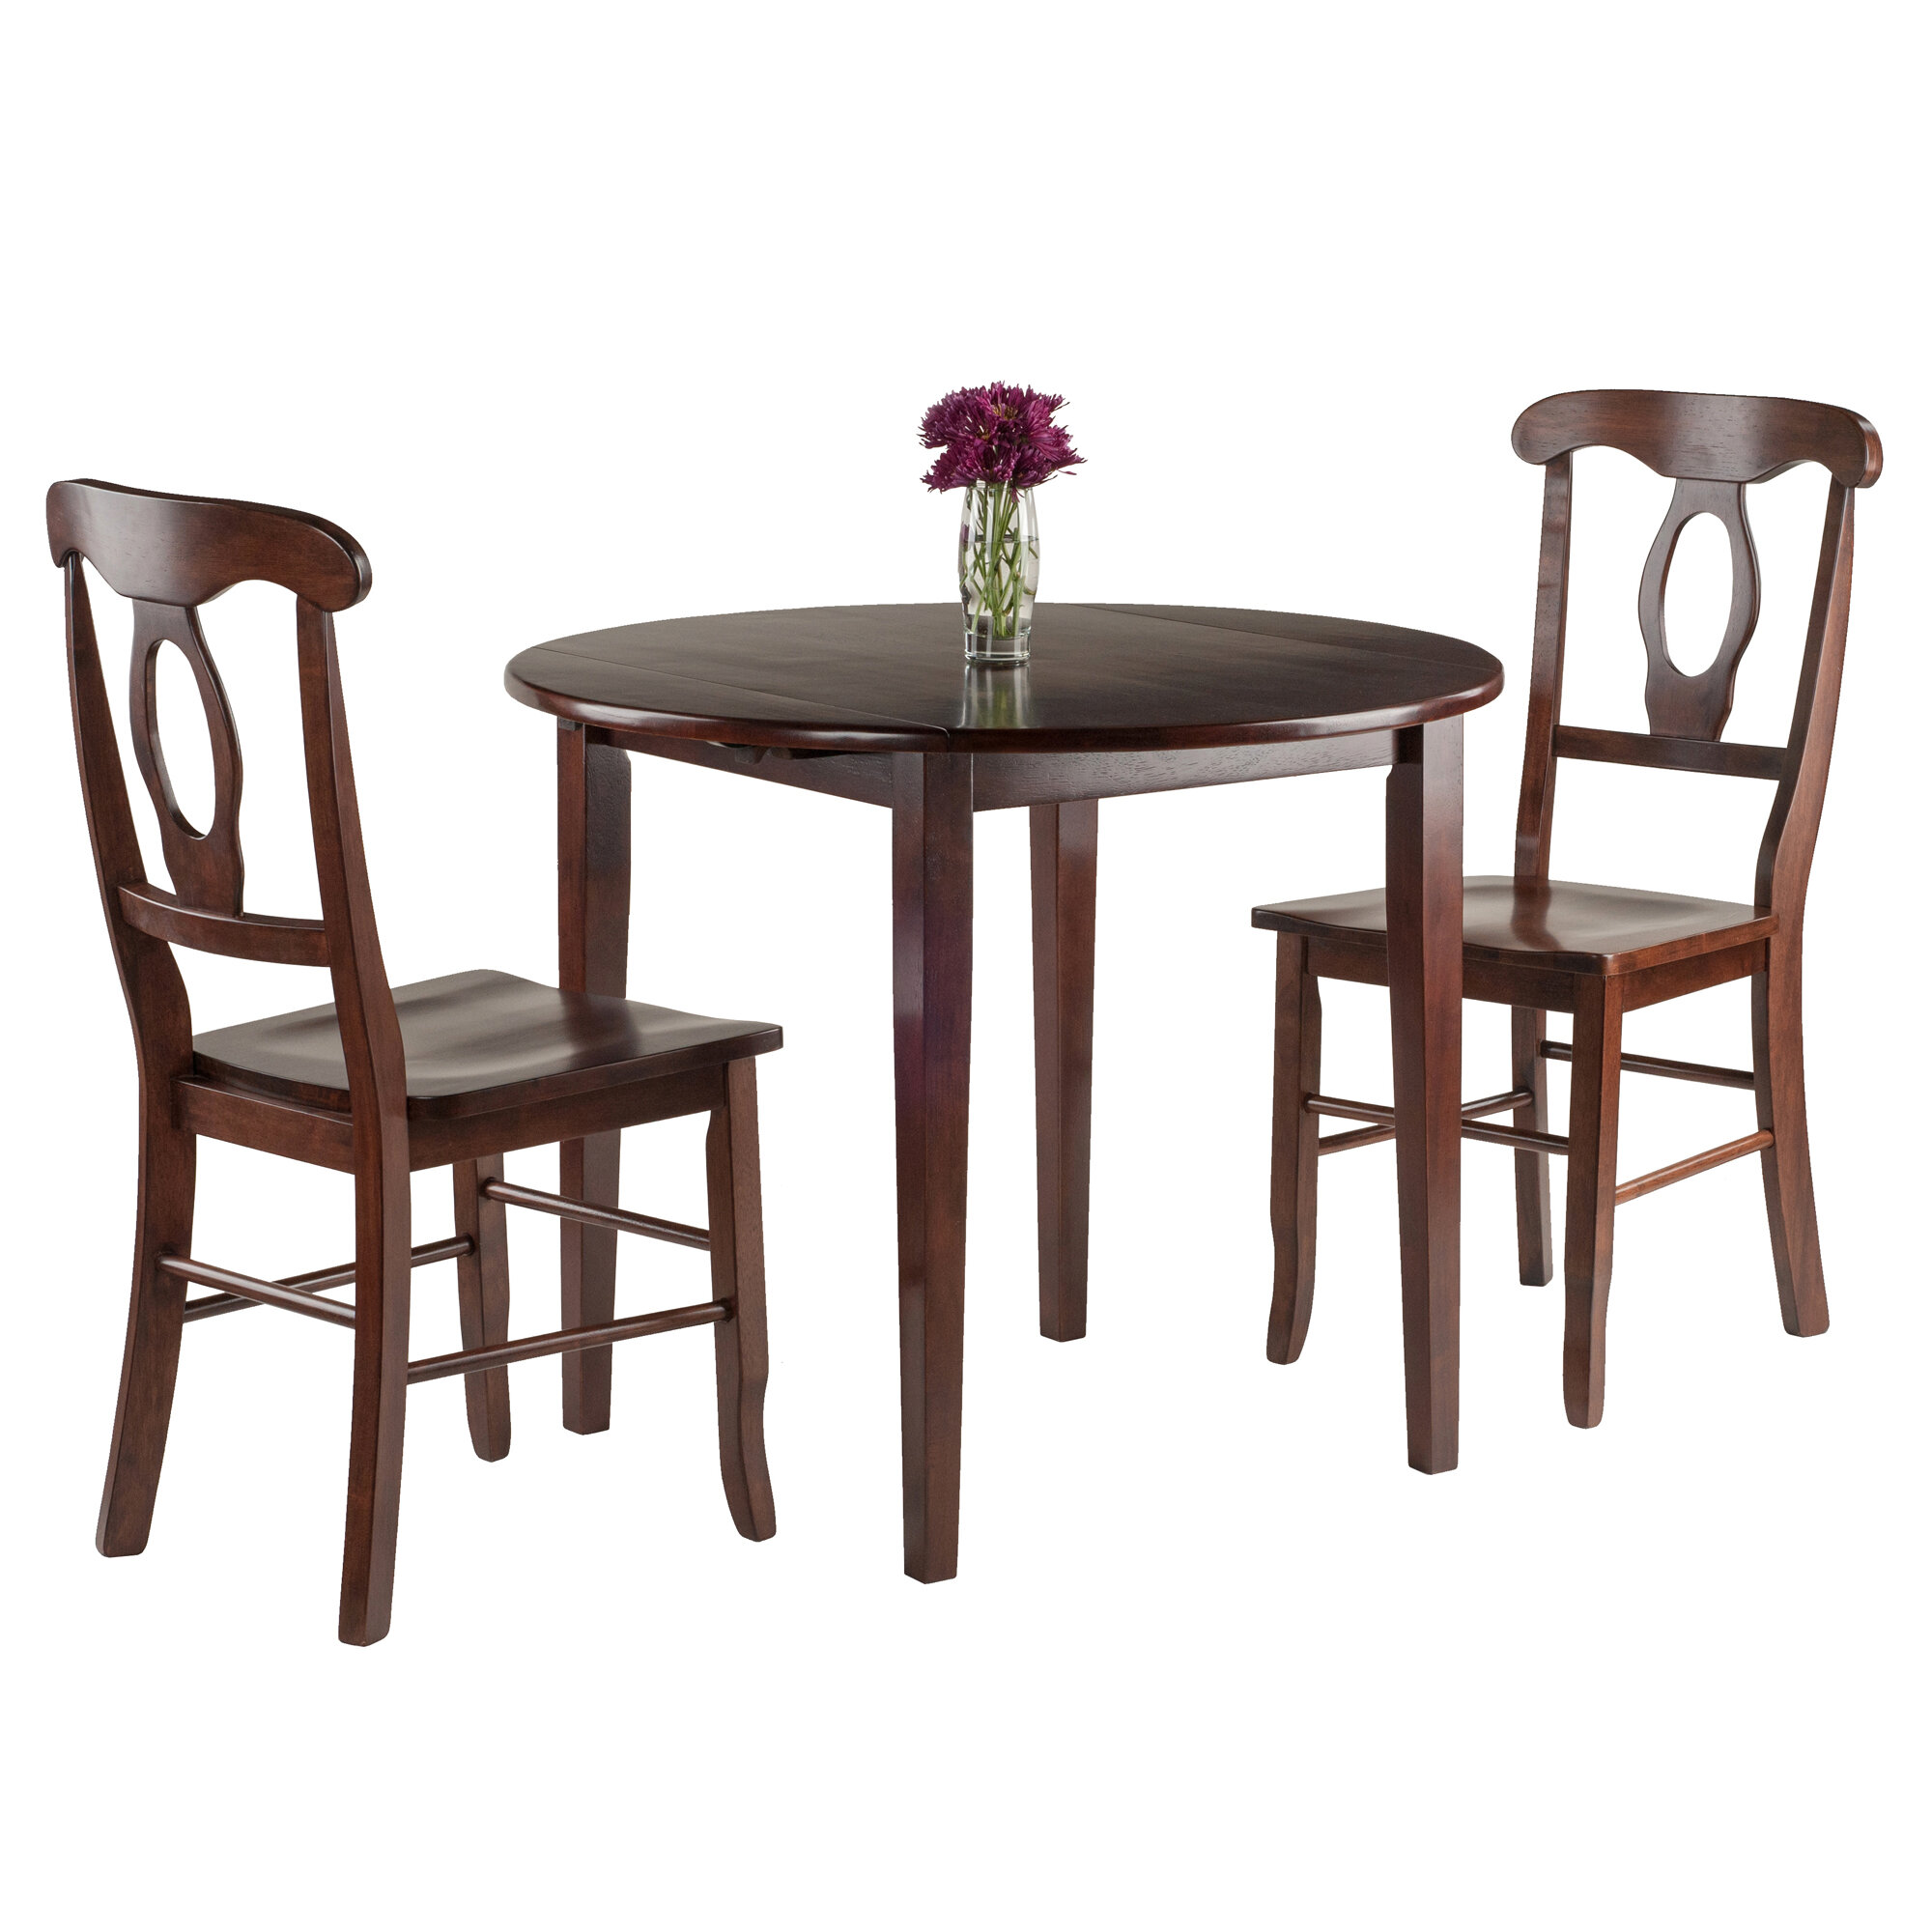 3 piece drop leaf dining set coaster alcott hill kendall piece drop leaf dining set reviews wayfair